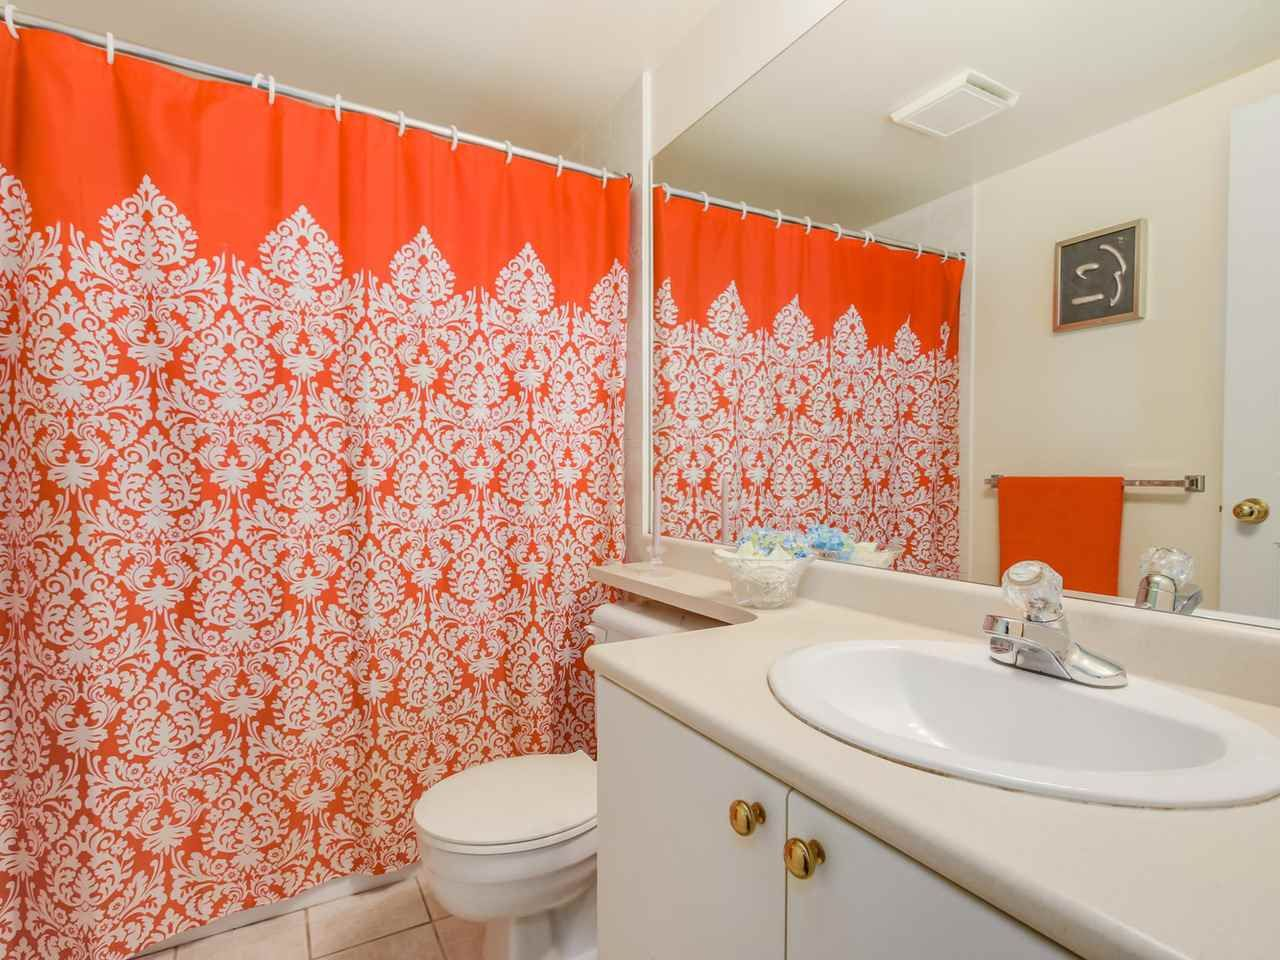 """Photo 7: Photos: 304 137 W 17 Street in North Vancouver: Central Lonsdale Condo for sale in """"Westgate"""" : MLS®# R2075830"""